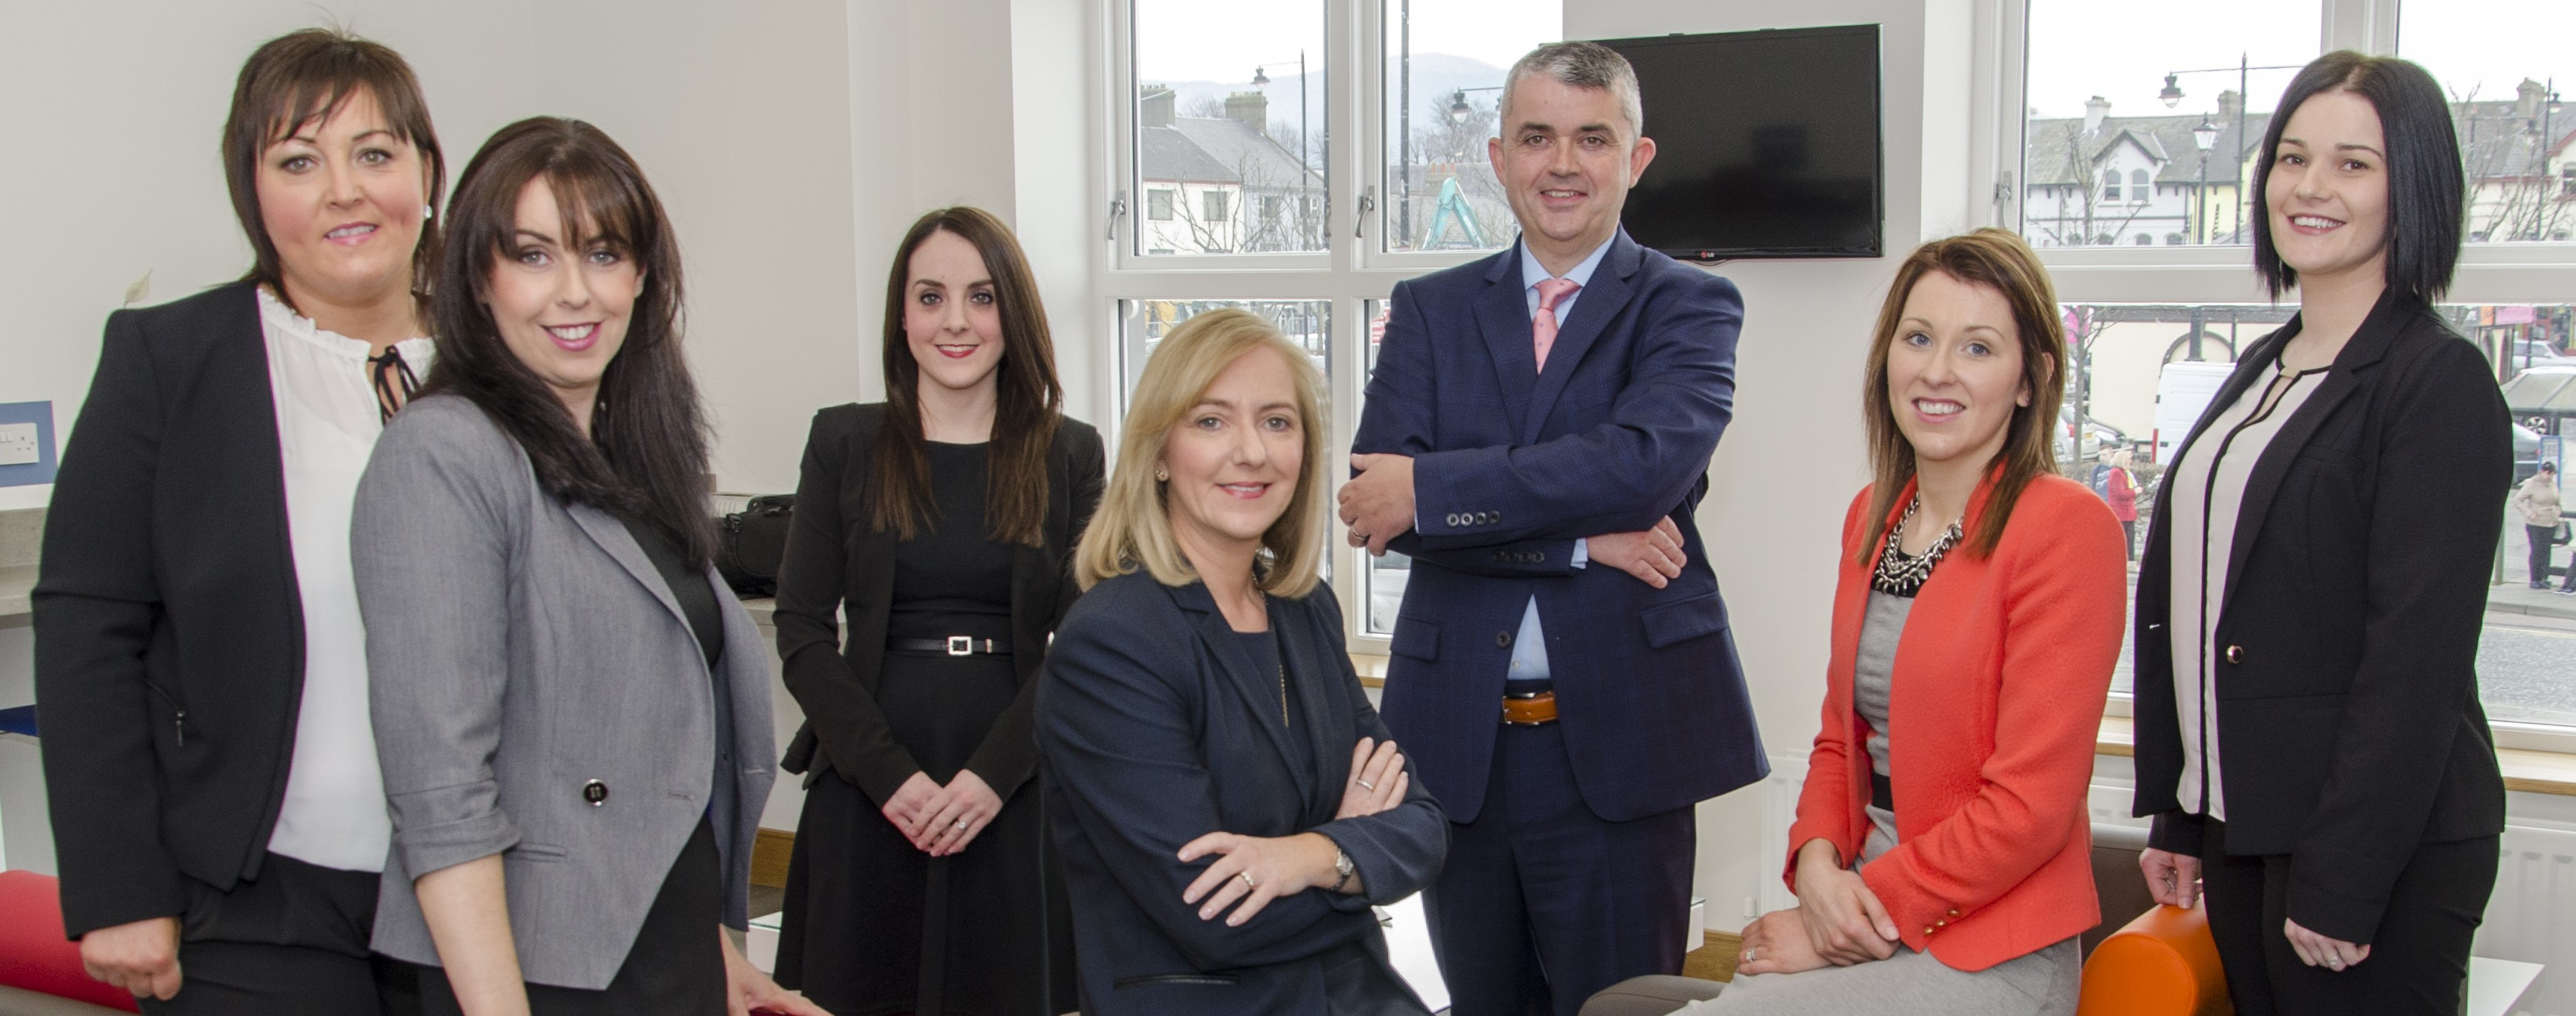 Personal injury experts Ireland